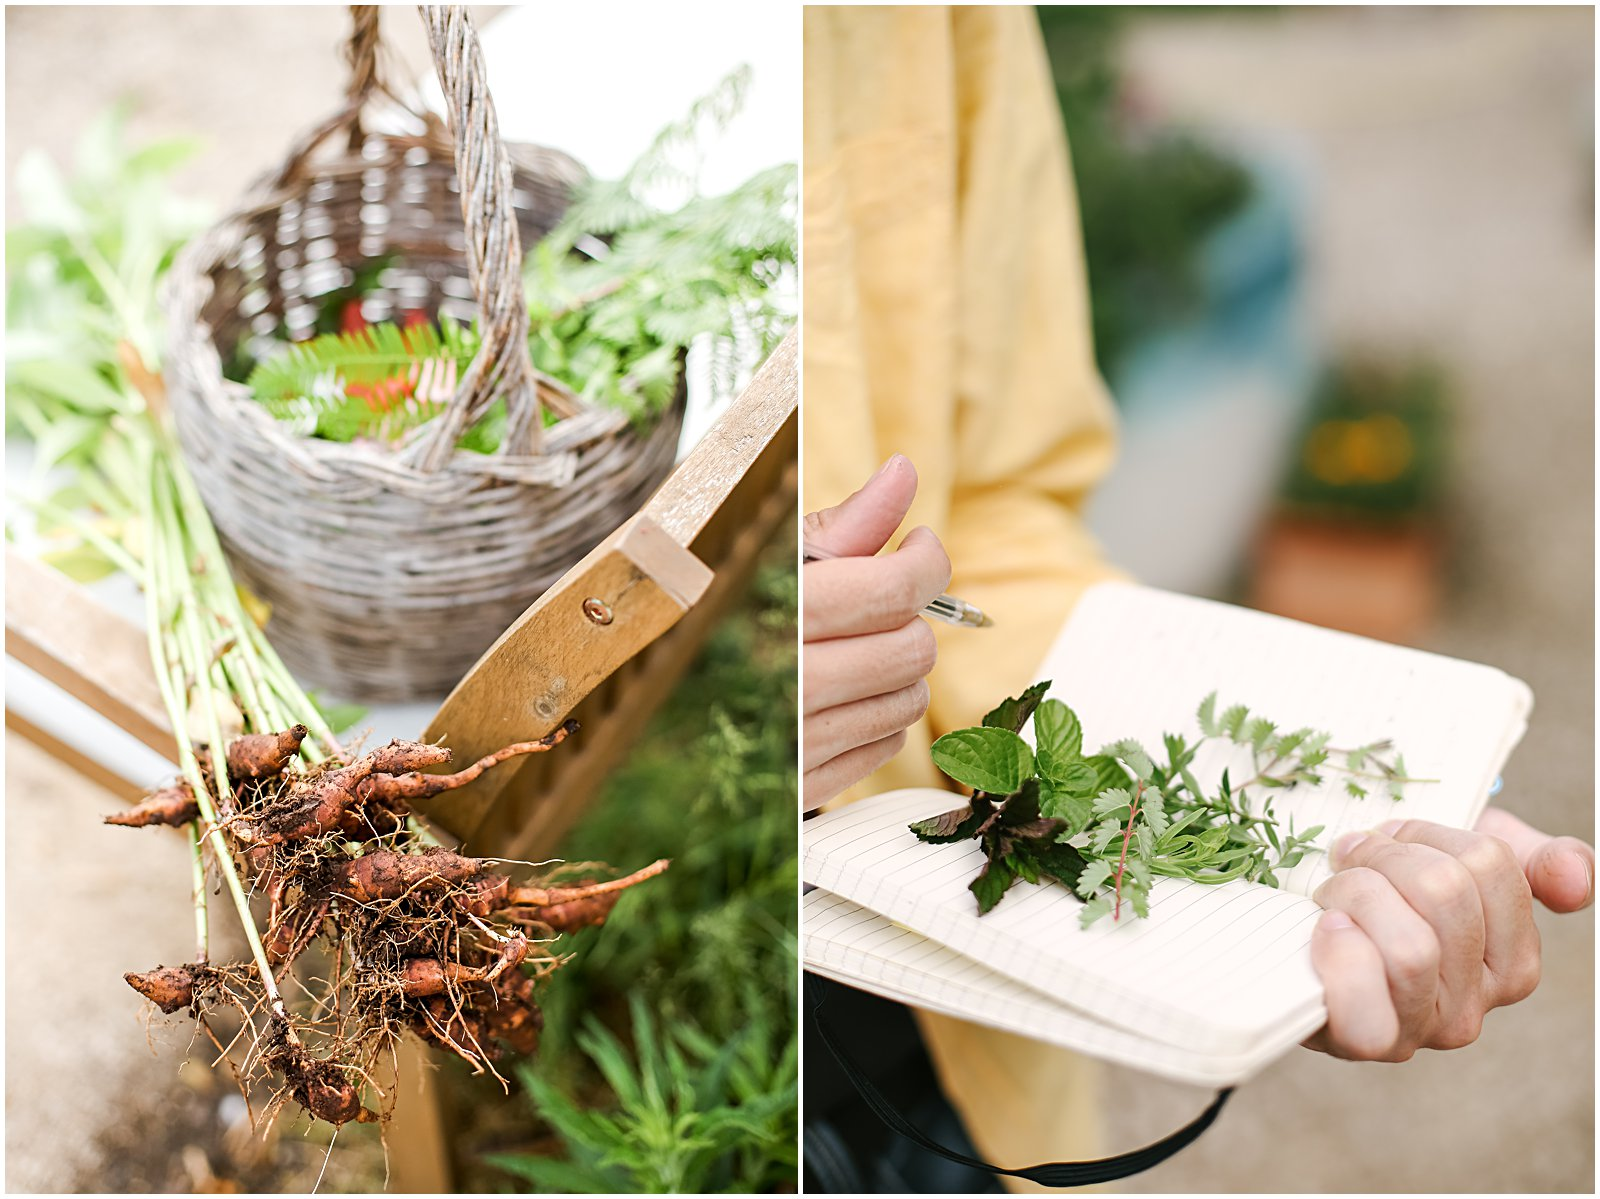 Local herbs and plants at a vegetarian cooking class in Rome